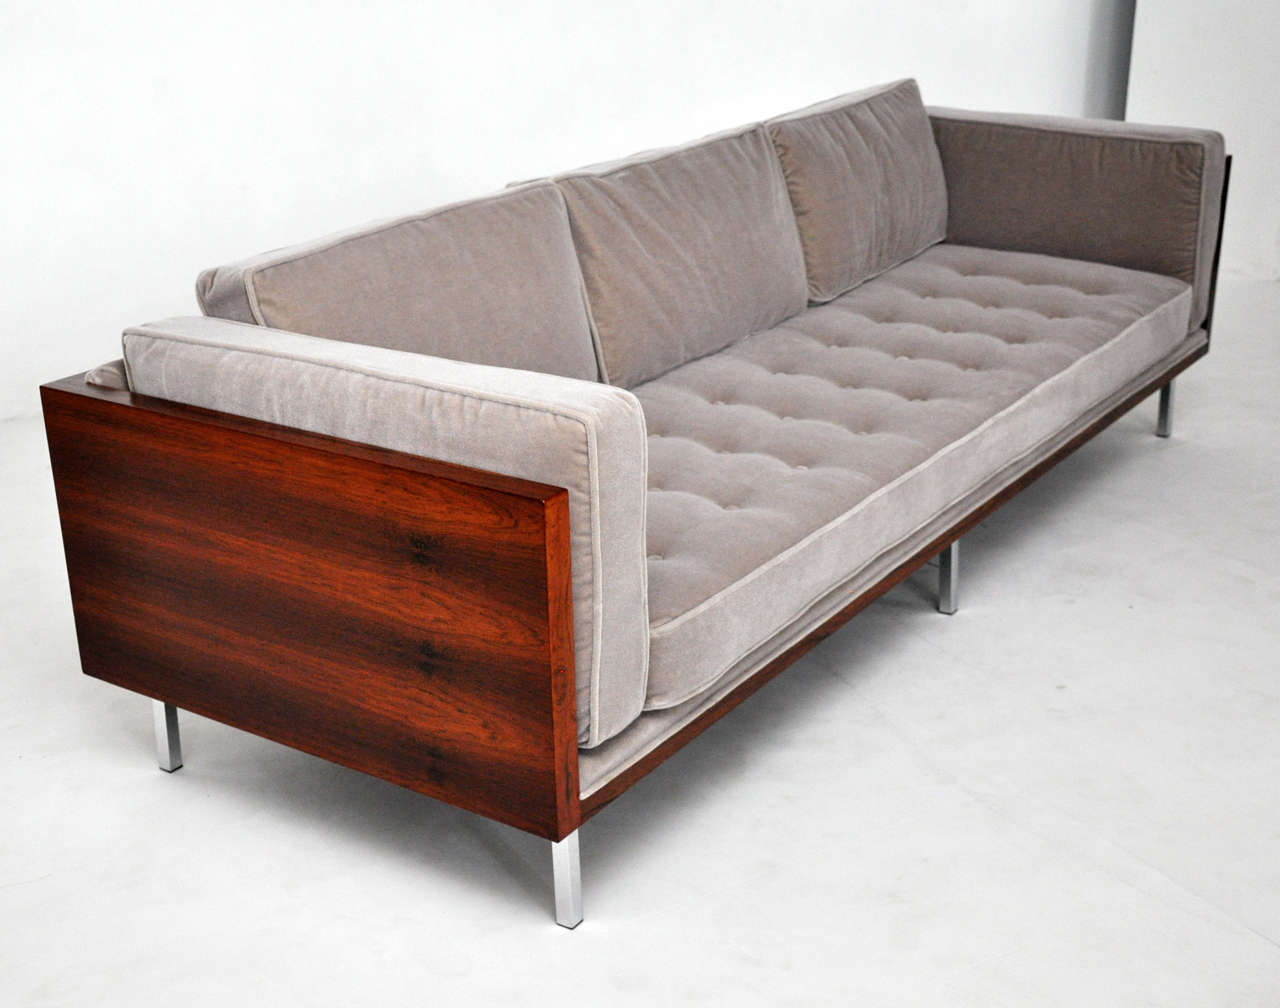 Nice 8ft Rosewood Case Sofa By Milo Baughman. Fully Restored. Beautiful Rosewood  Wood Grain.